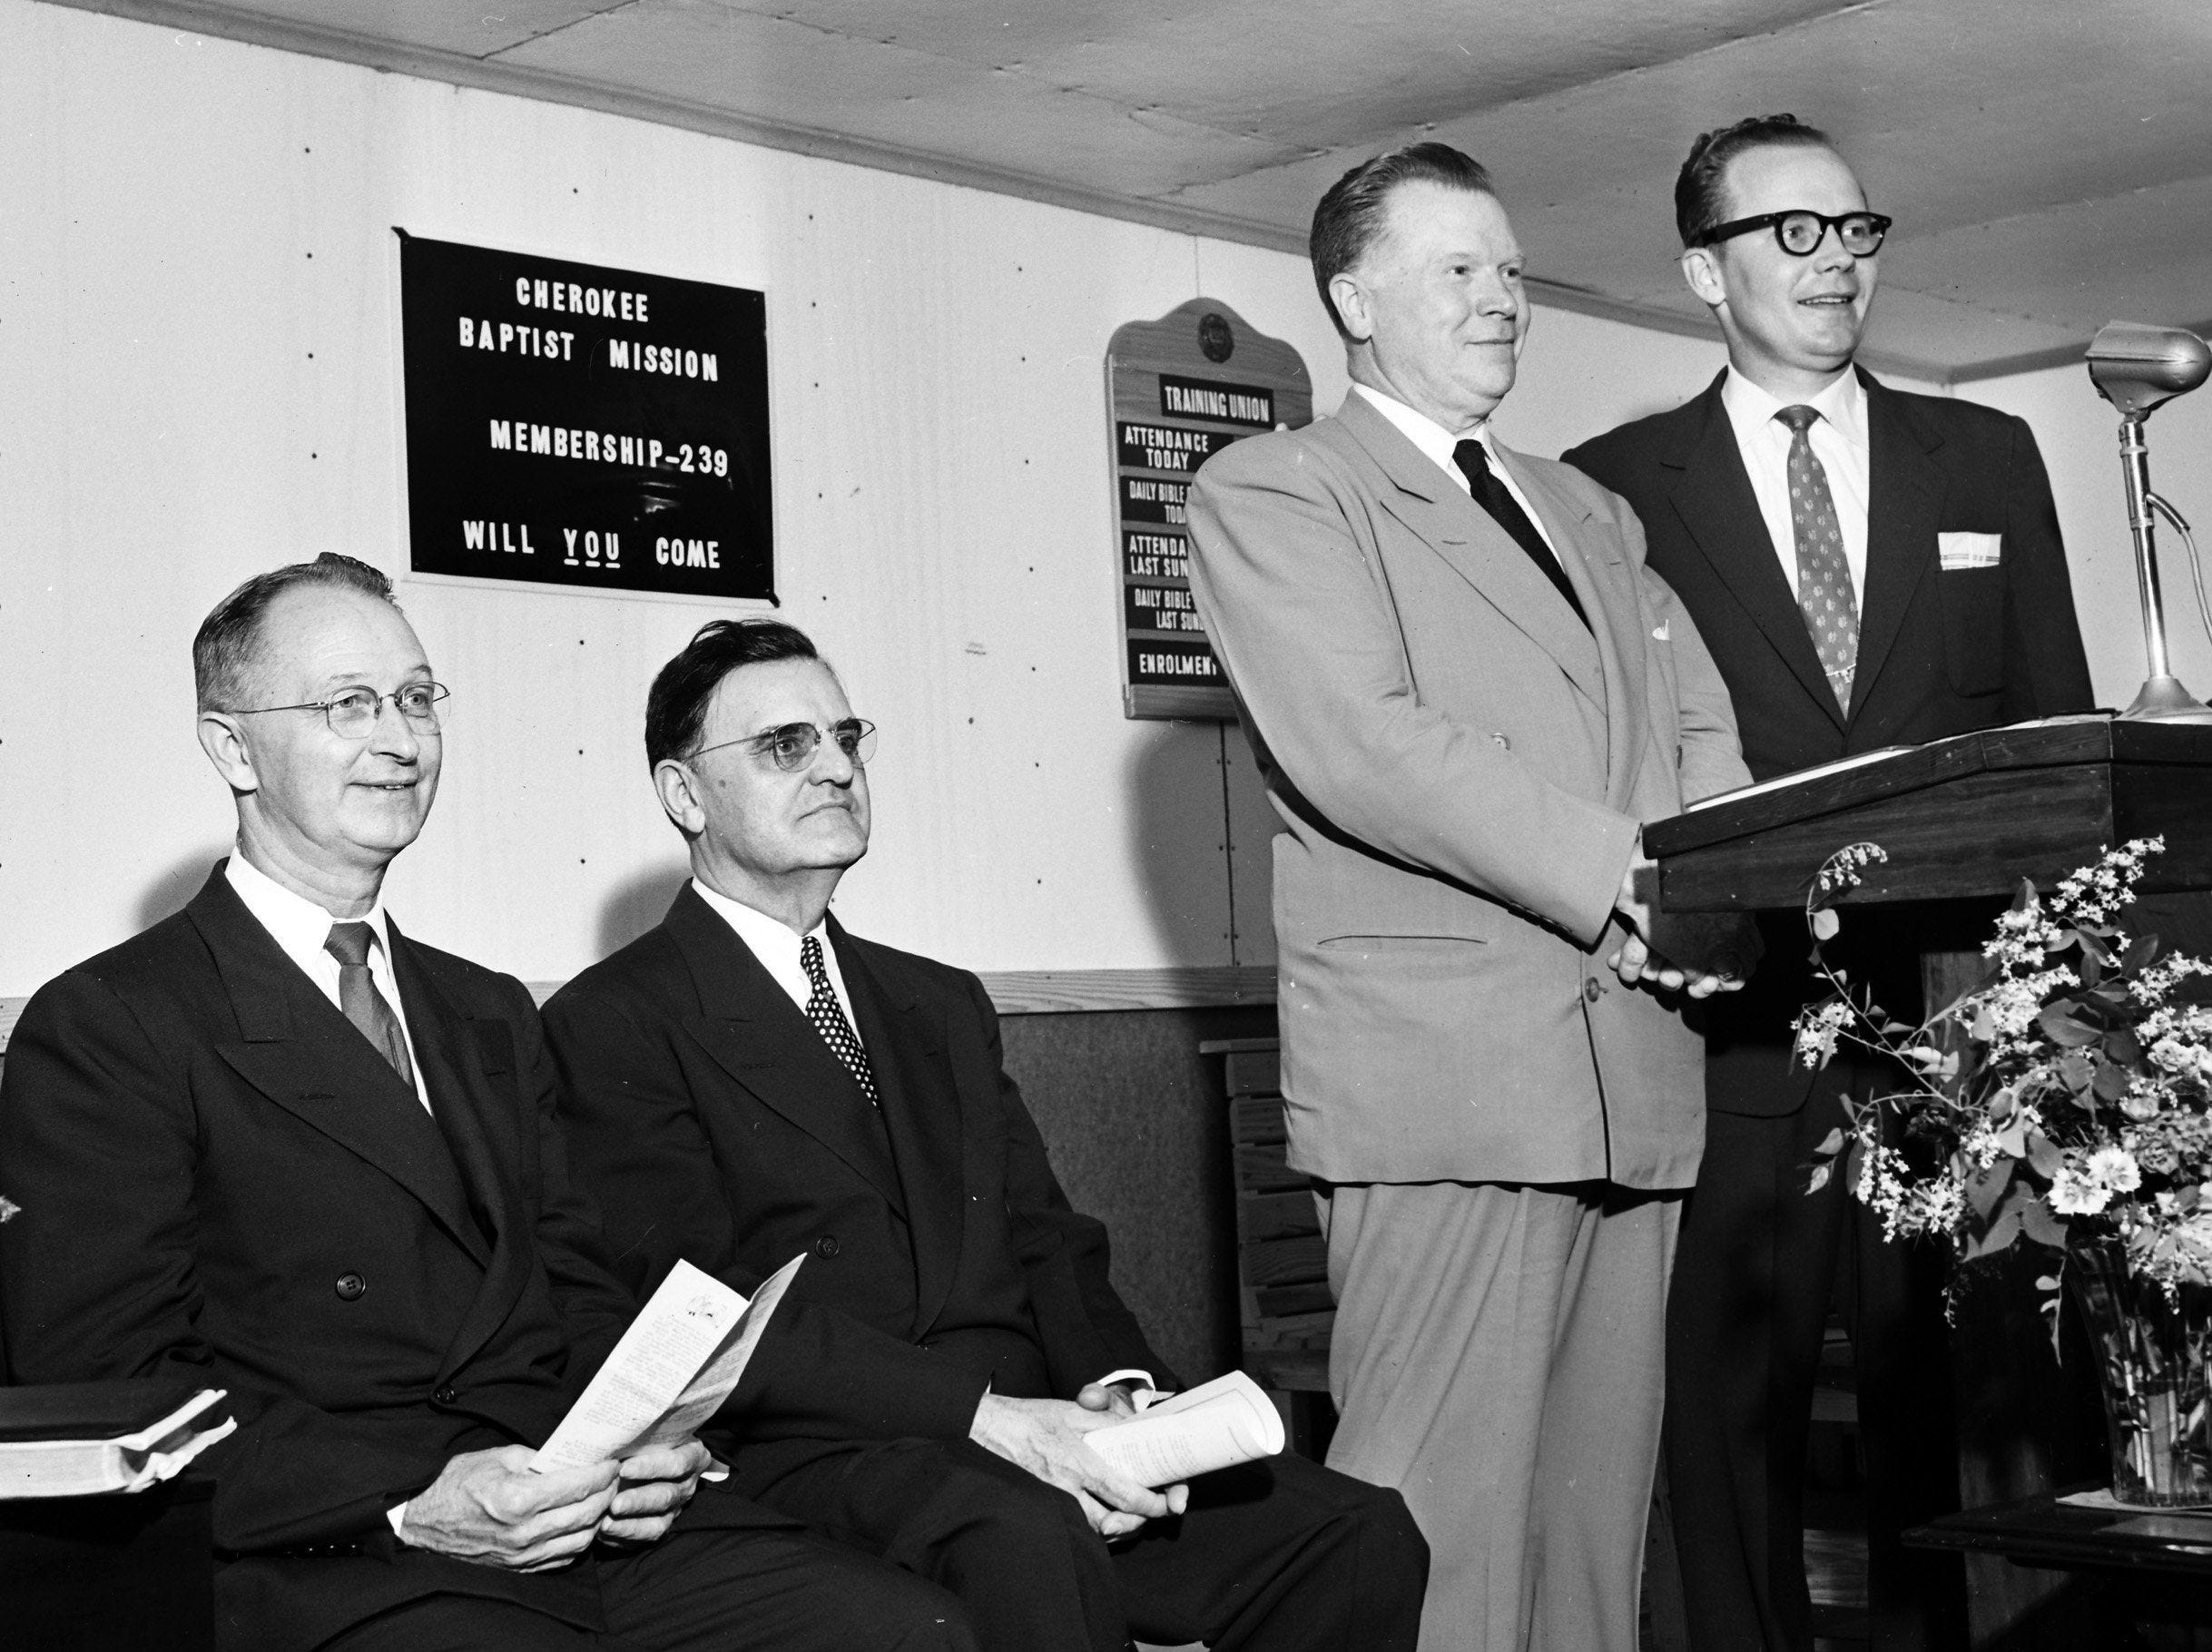 The Rev. Mack R. Douglas, right, pastor of Cherokee Baptist Church, wore a smile with a reason in May 1953 ? his pastorate becomes a church instead of a mission after transfer of deed to the land at 3311 Kimball was made by Union Avenue Baptist Church. Jesse Daniel, left, State Baptist Sunday School secretary, and Dr. J.G. Hughes, second left, pastor of Union Avenue Baptist Church, took part in ceremonies, at which Dr. Harold E. Ingraham, second right, business manager of the Baptist Sunday School Board in Nashville, was speaker.